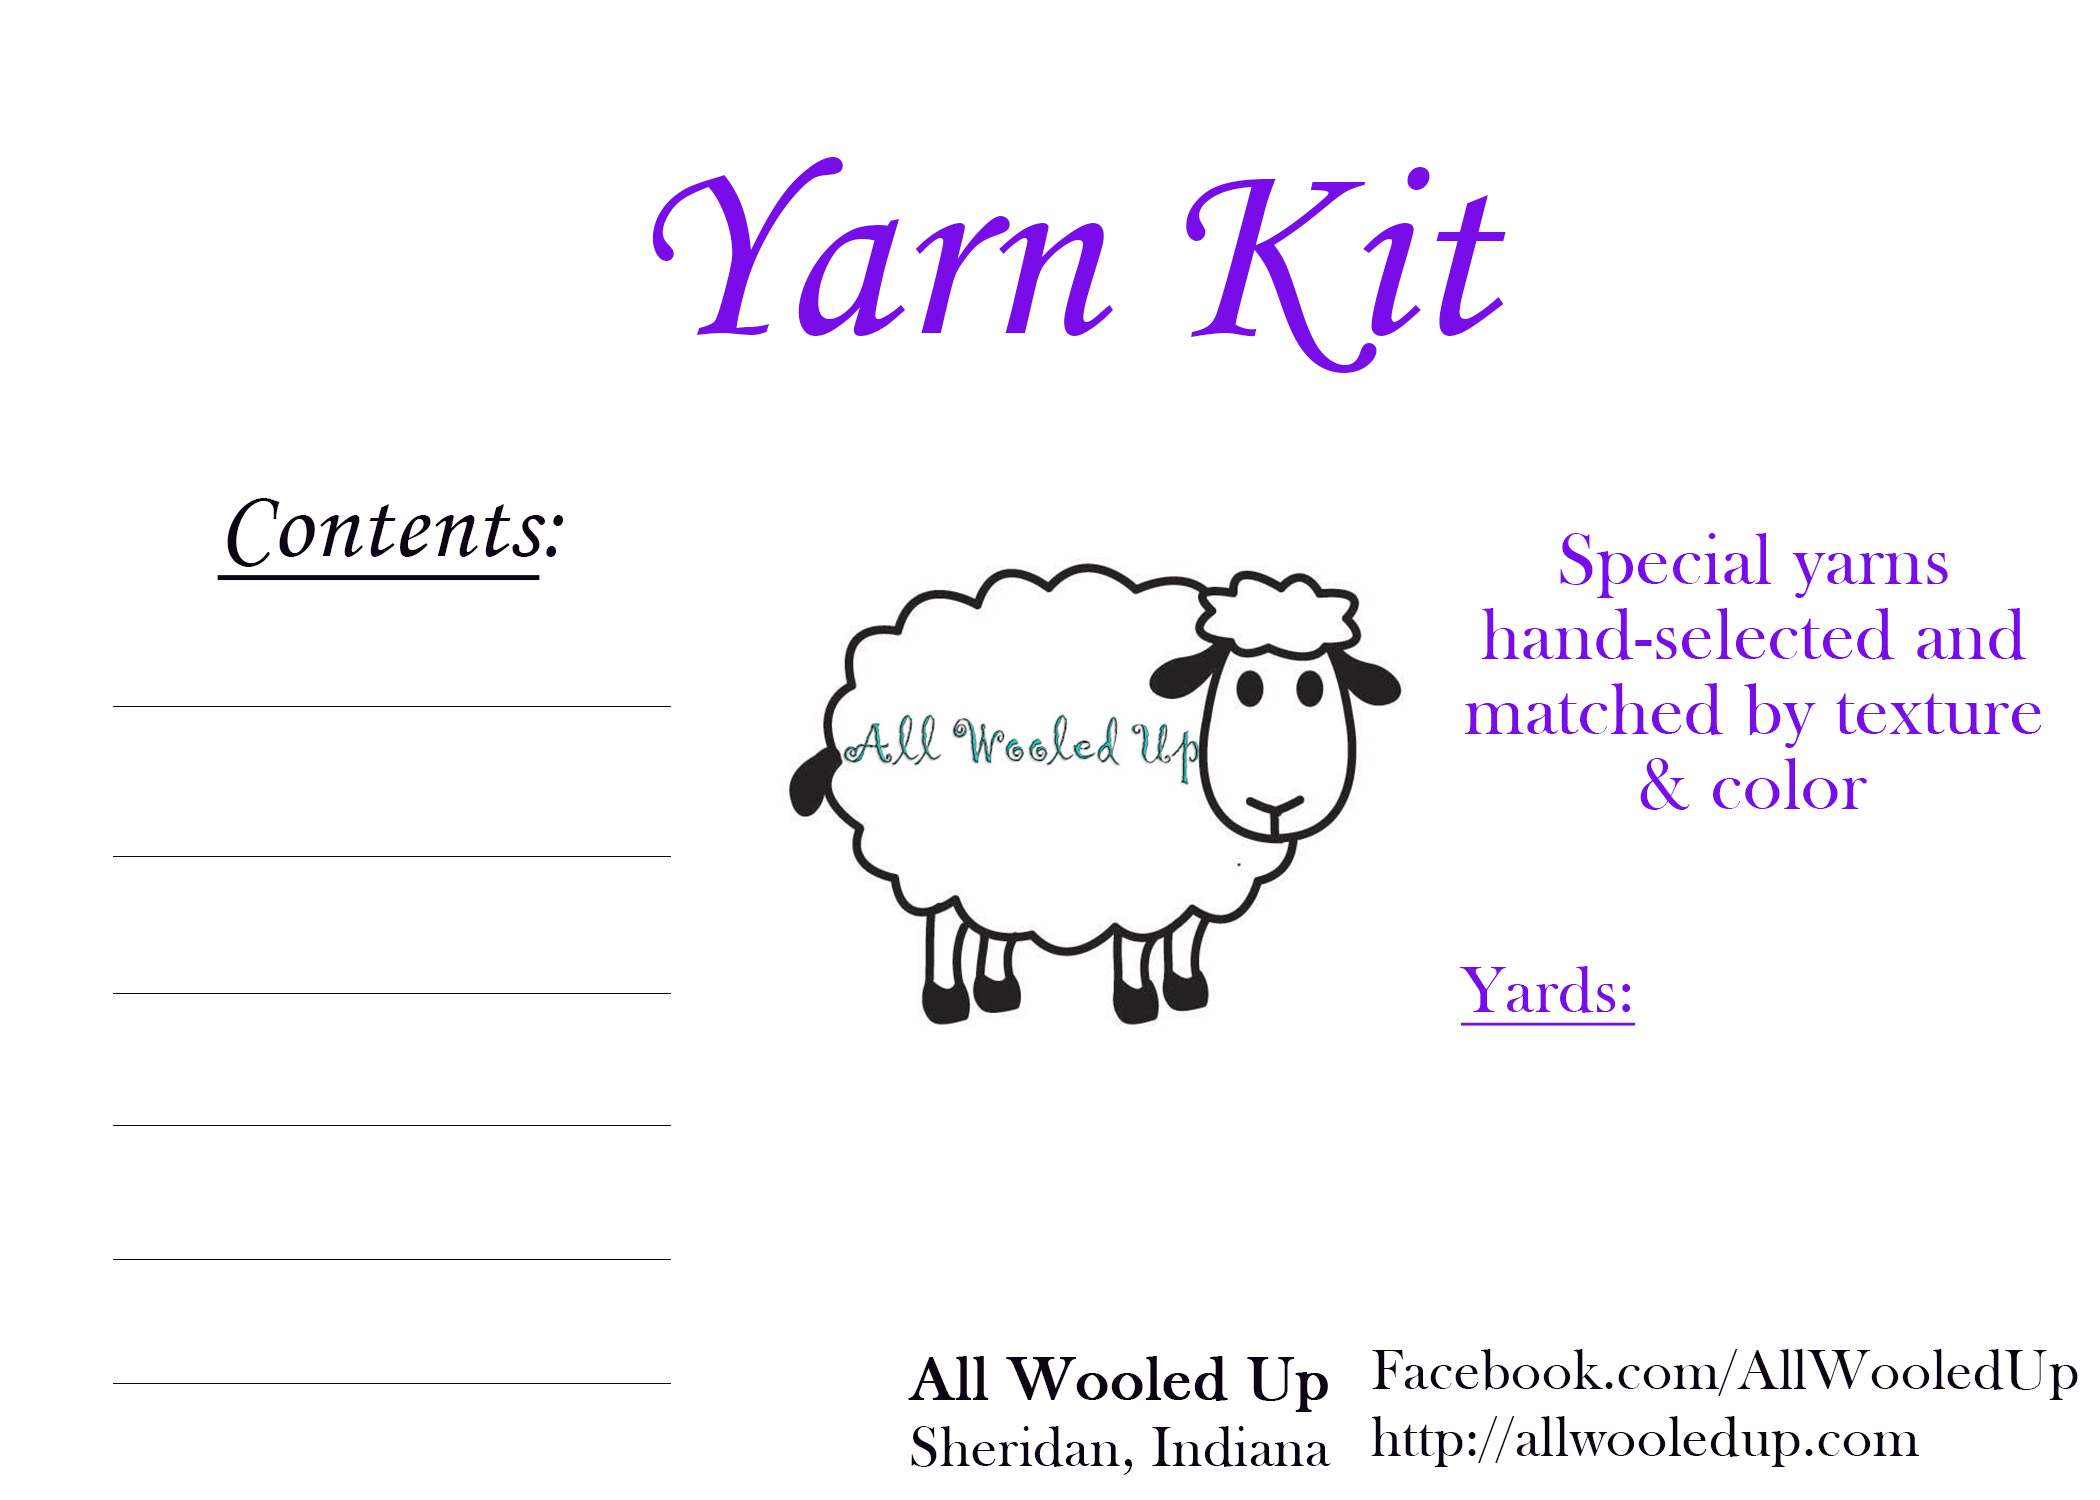 All Wooled Up Yarn Kit